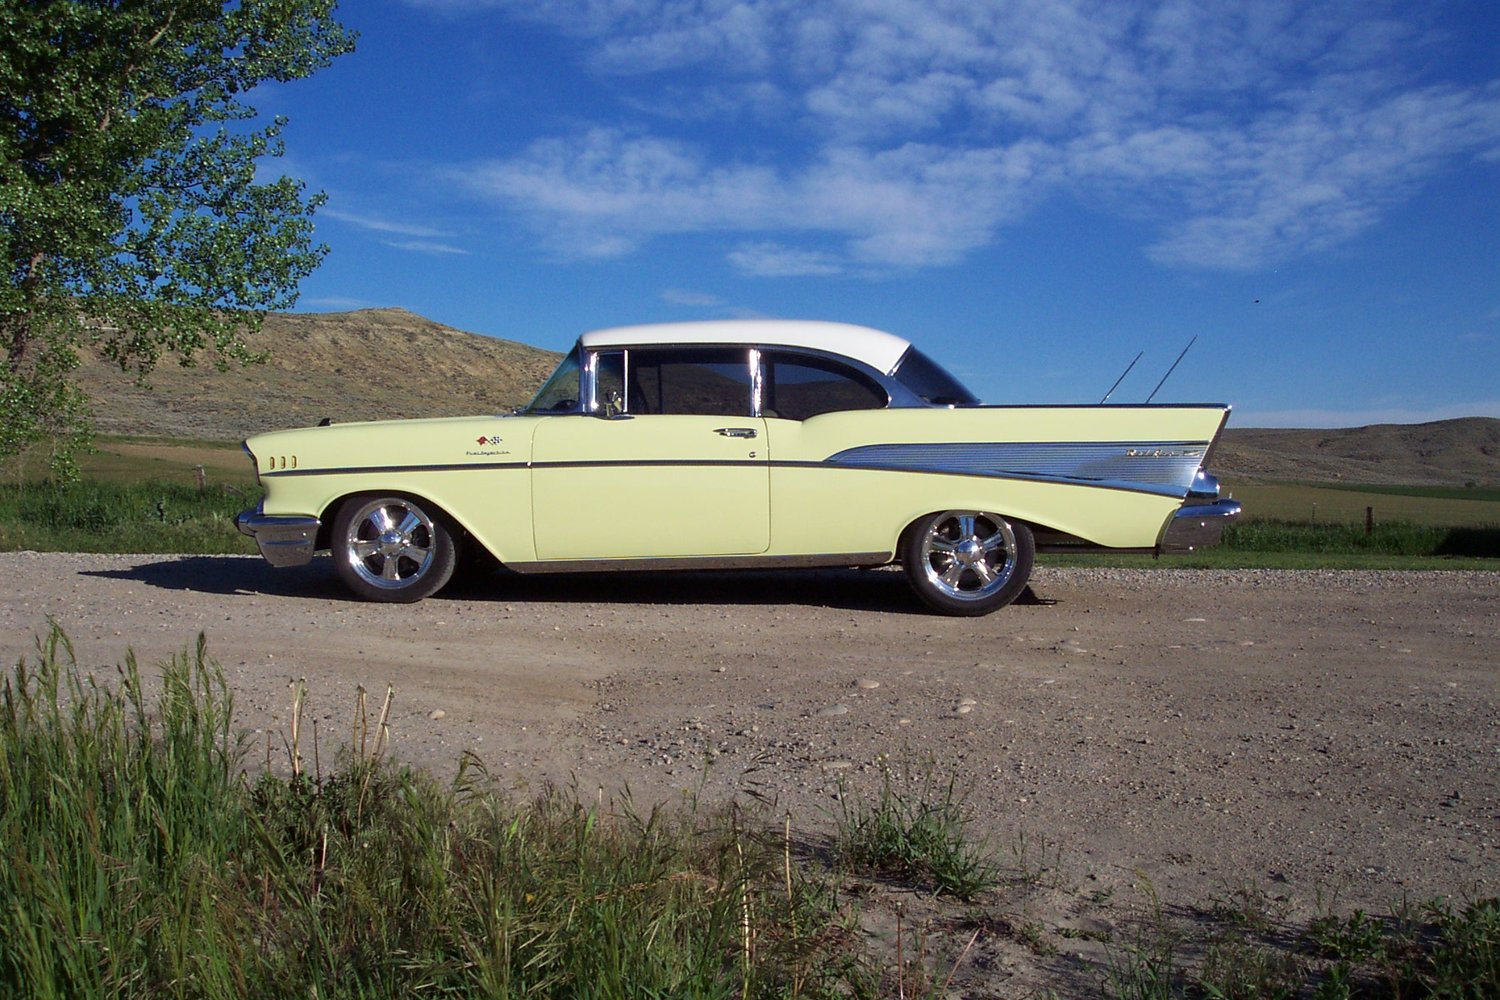 Rr Frames 1957 Chevy Apache Truck For Sale 293 249